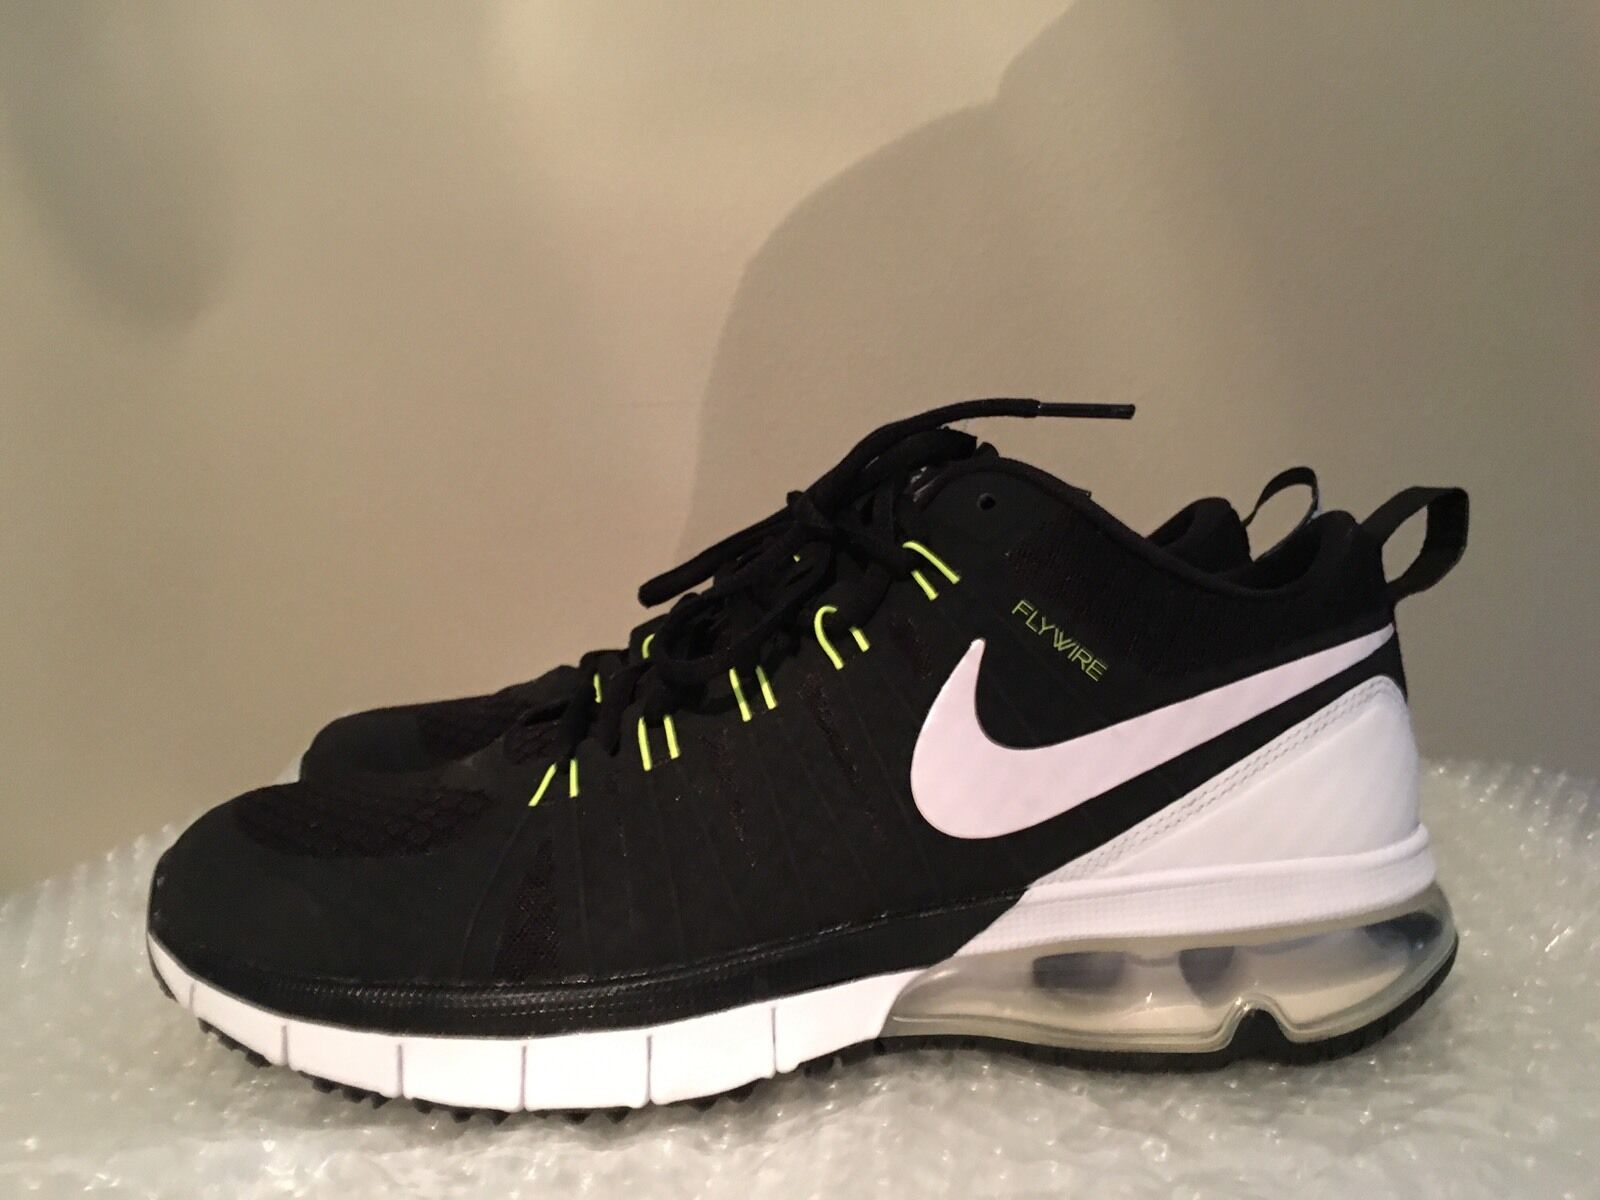 New Without Box Nike Air Max Men's FlyWire Training Shoes Size 10